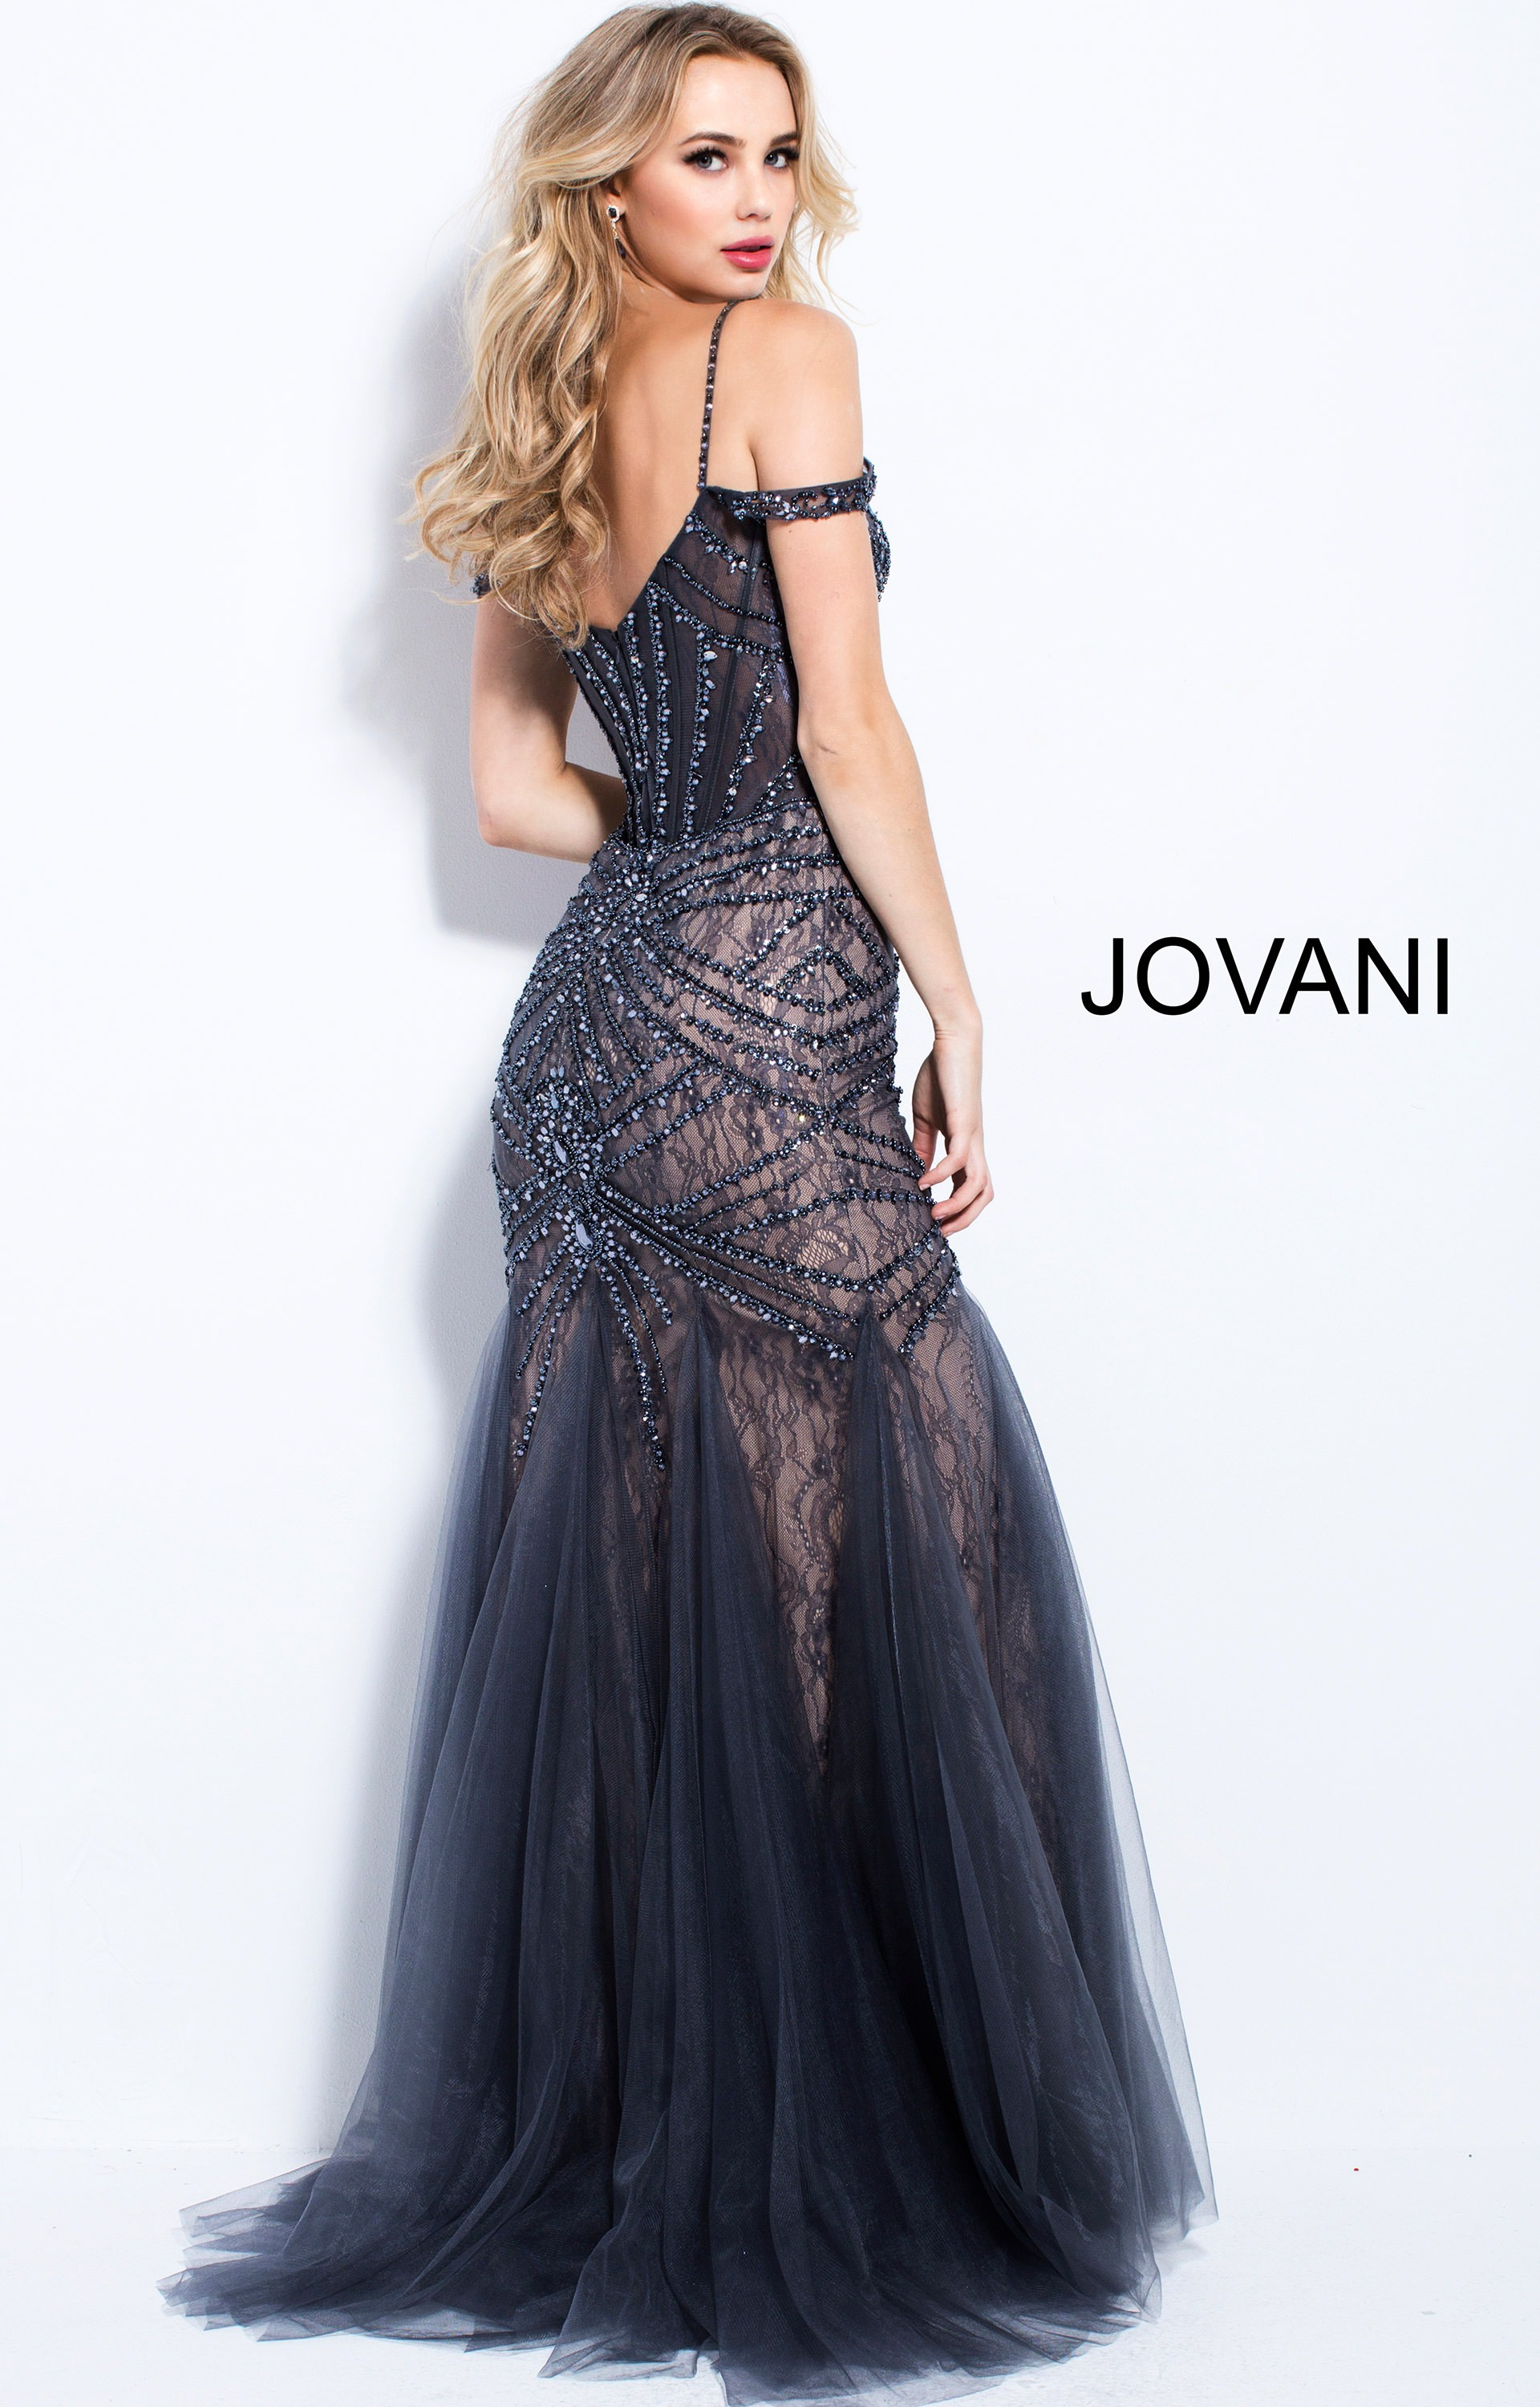 Jovani 55876 Off The Shoulder Beaded Mermaid Prom Dress